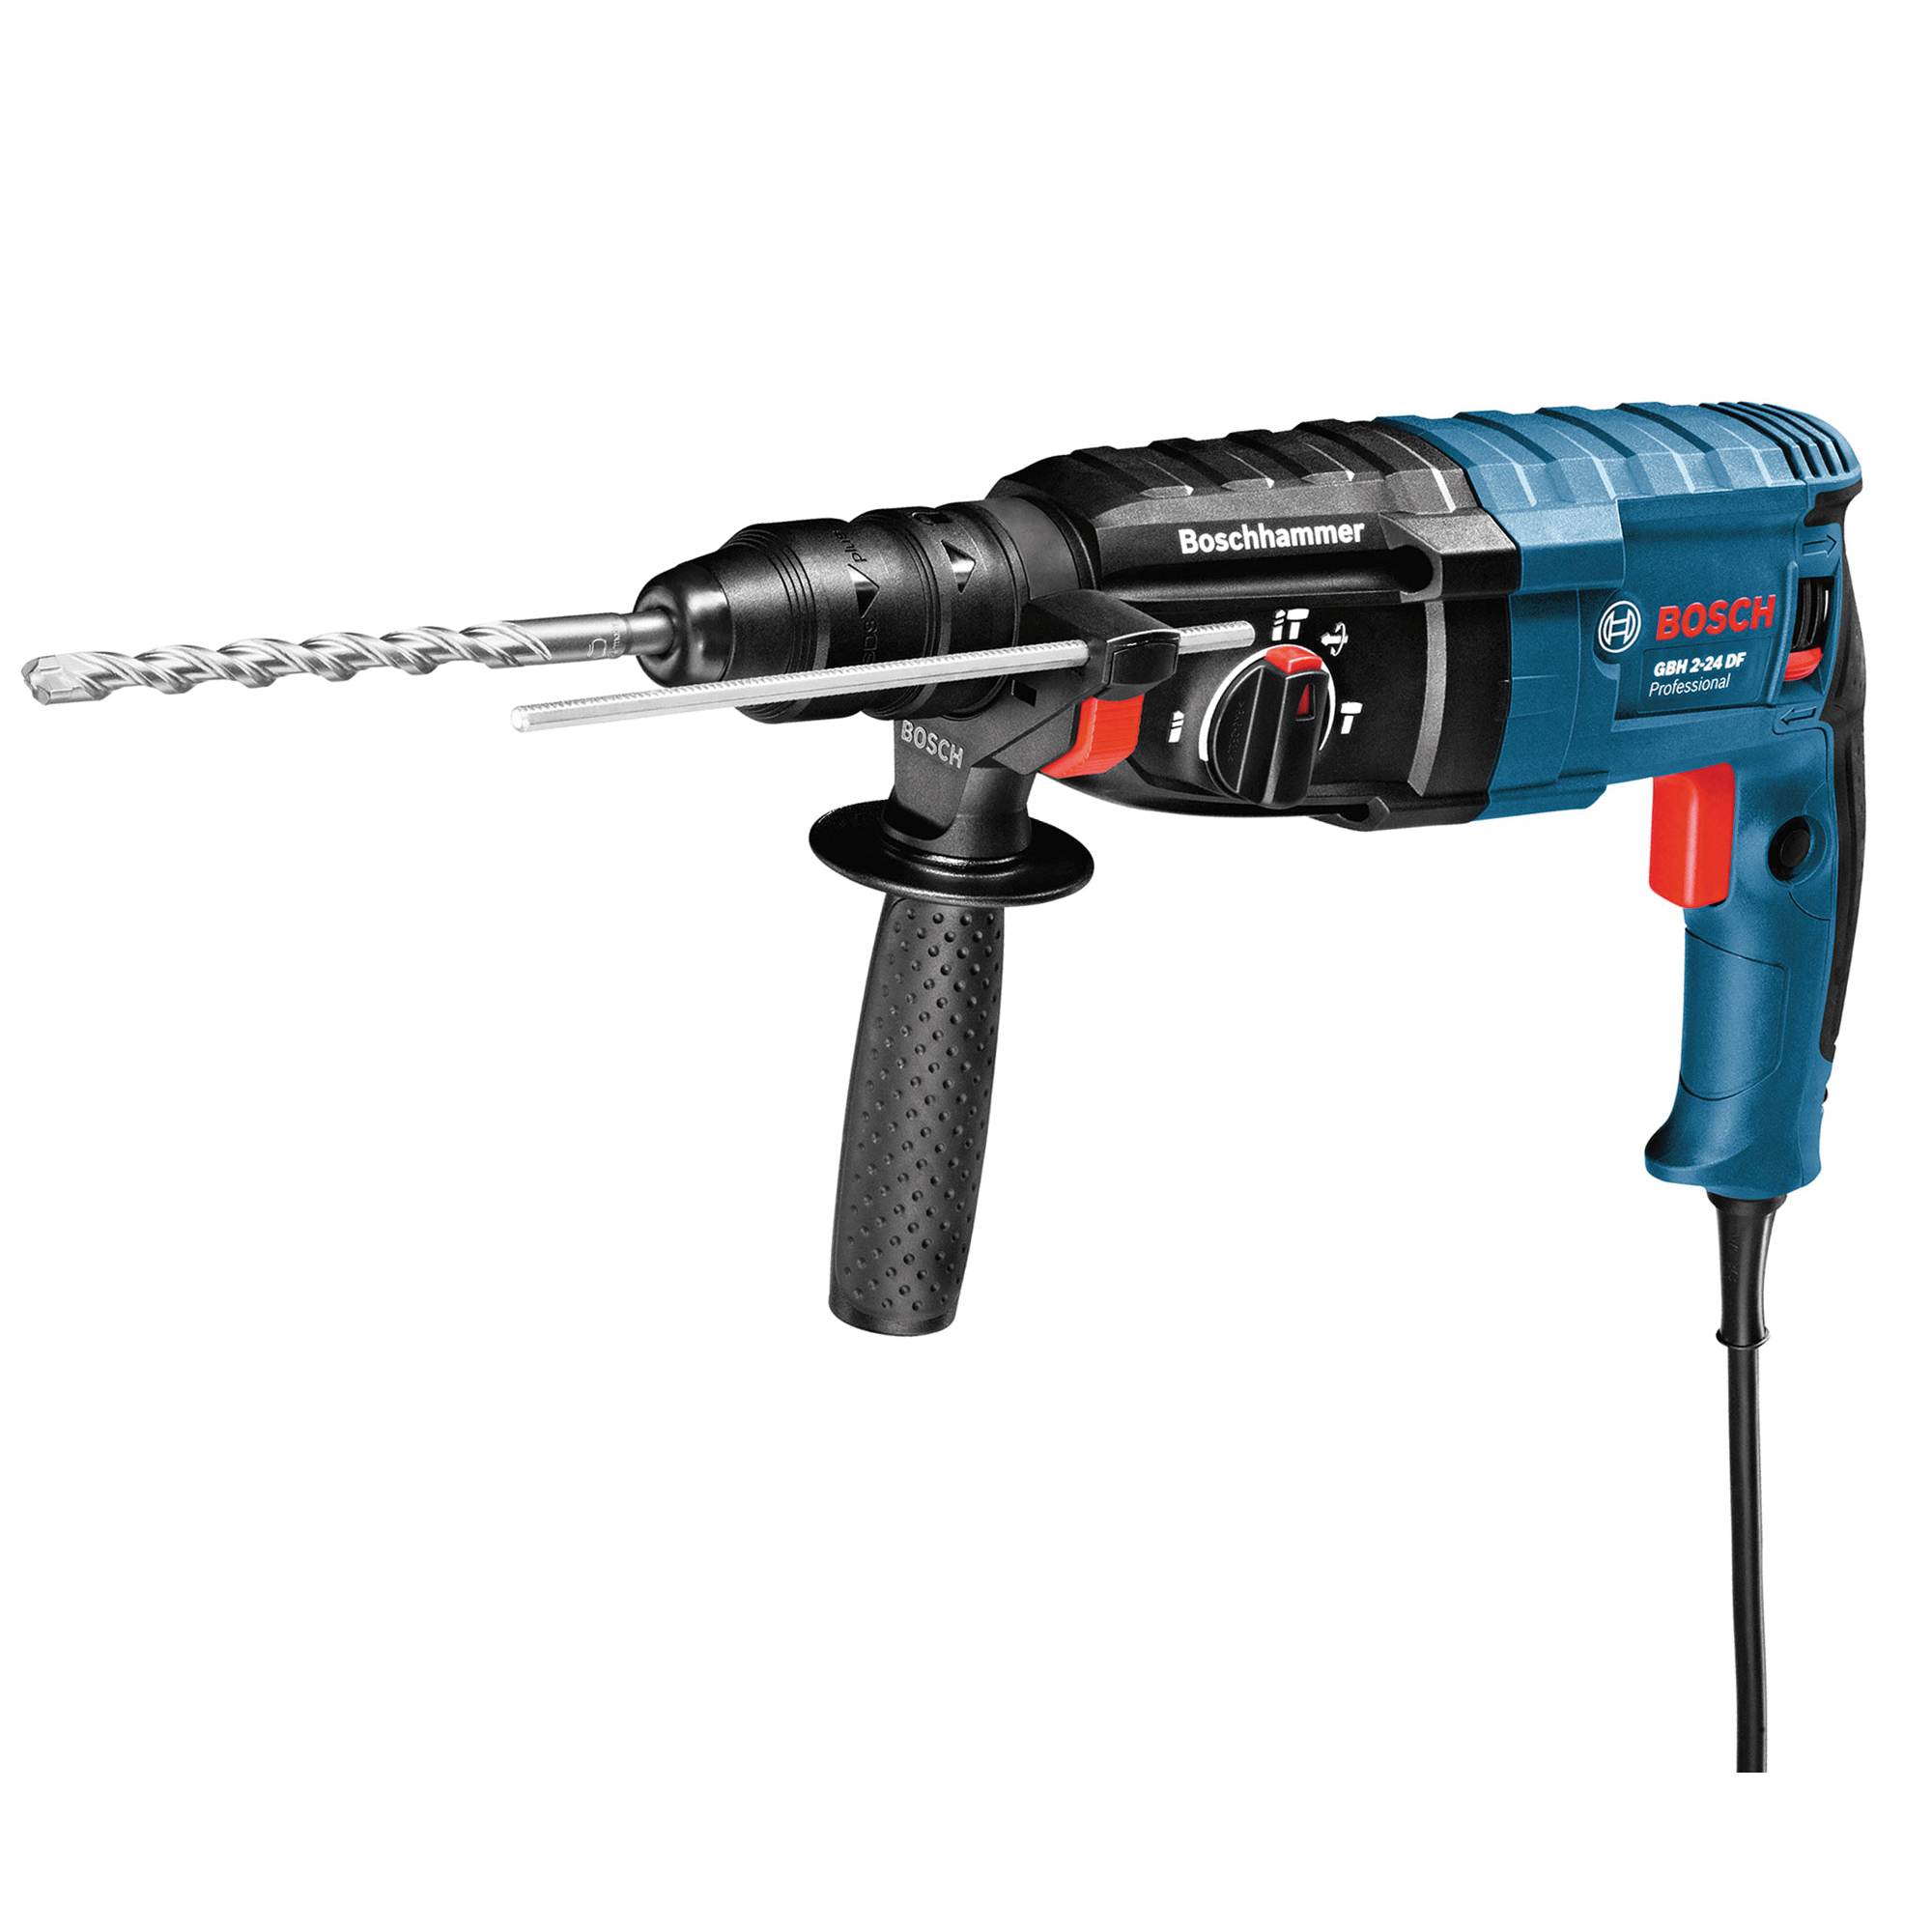 bosch gbh 2 24 d 3 mode 2kg sds rotary hammer drill. Black Bedroom Furniture Sets. Home Design Ideas